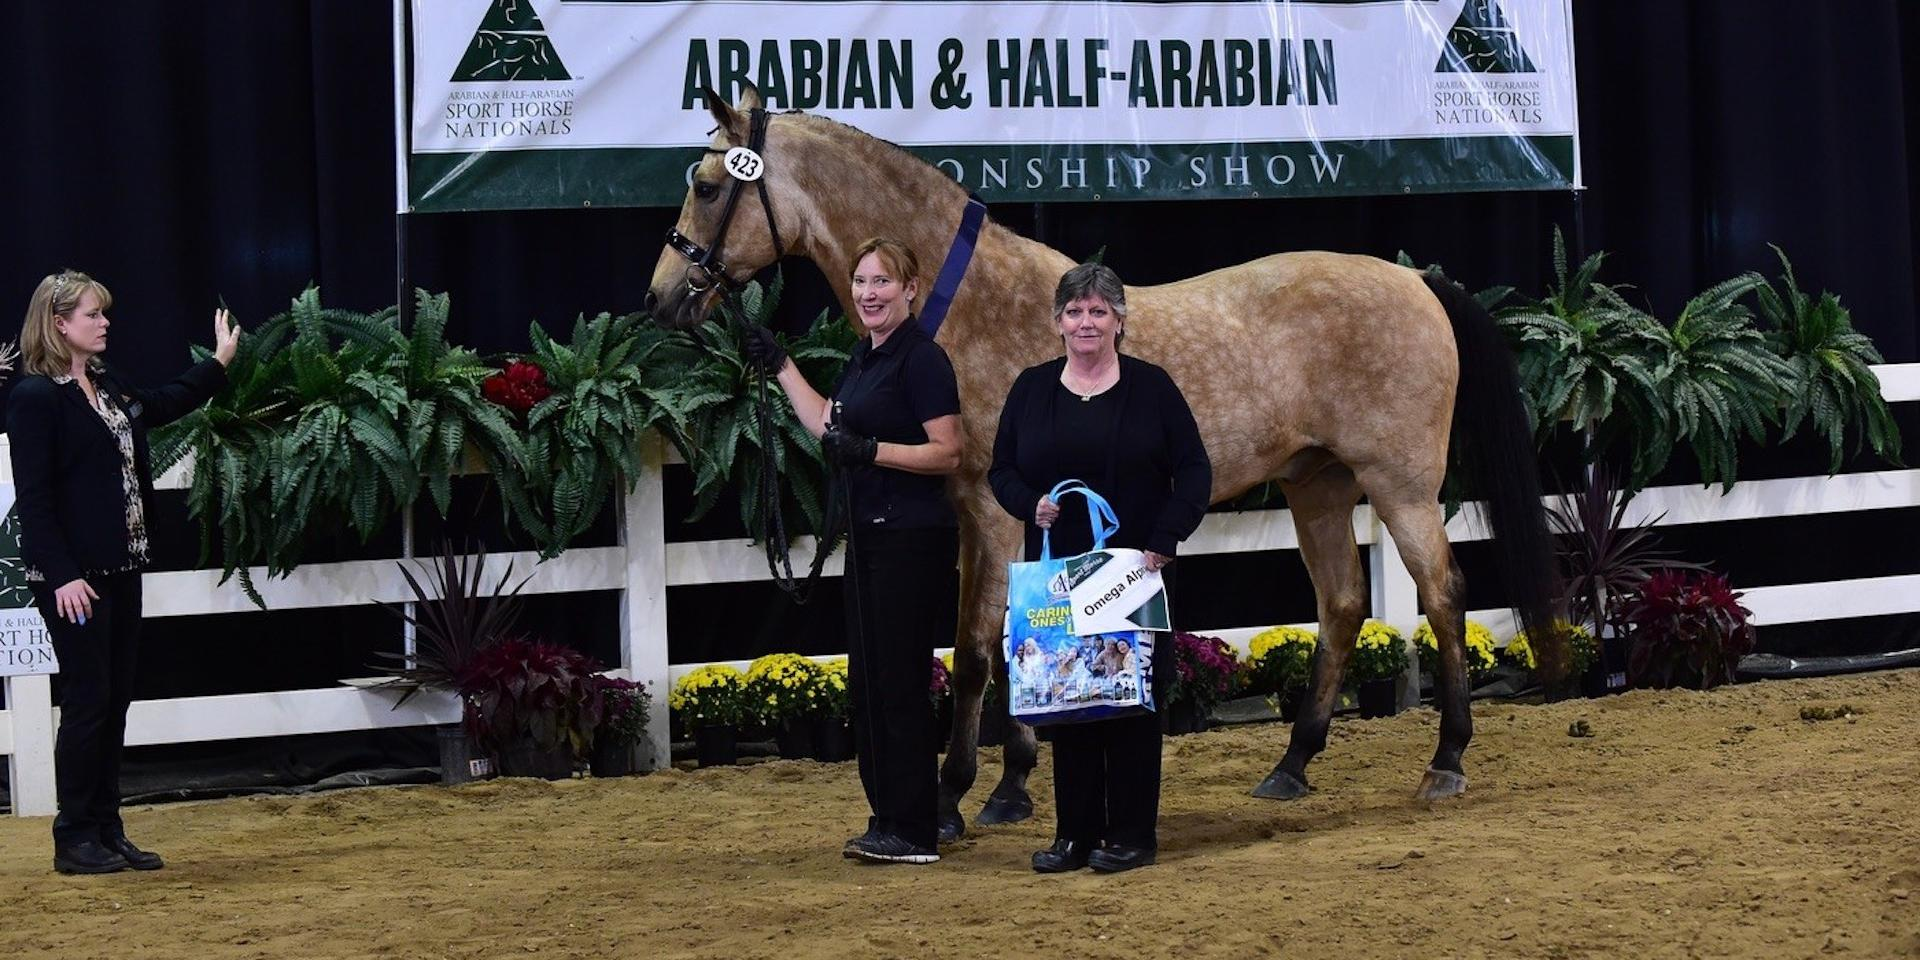 omega_alpha_healthy_horse_award-akceptional-aha_sport_horse_nationals-2018.jpg